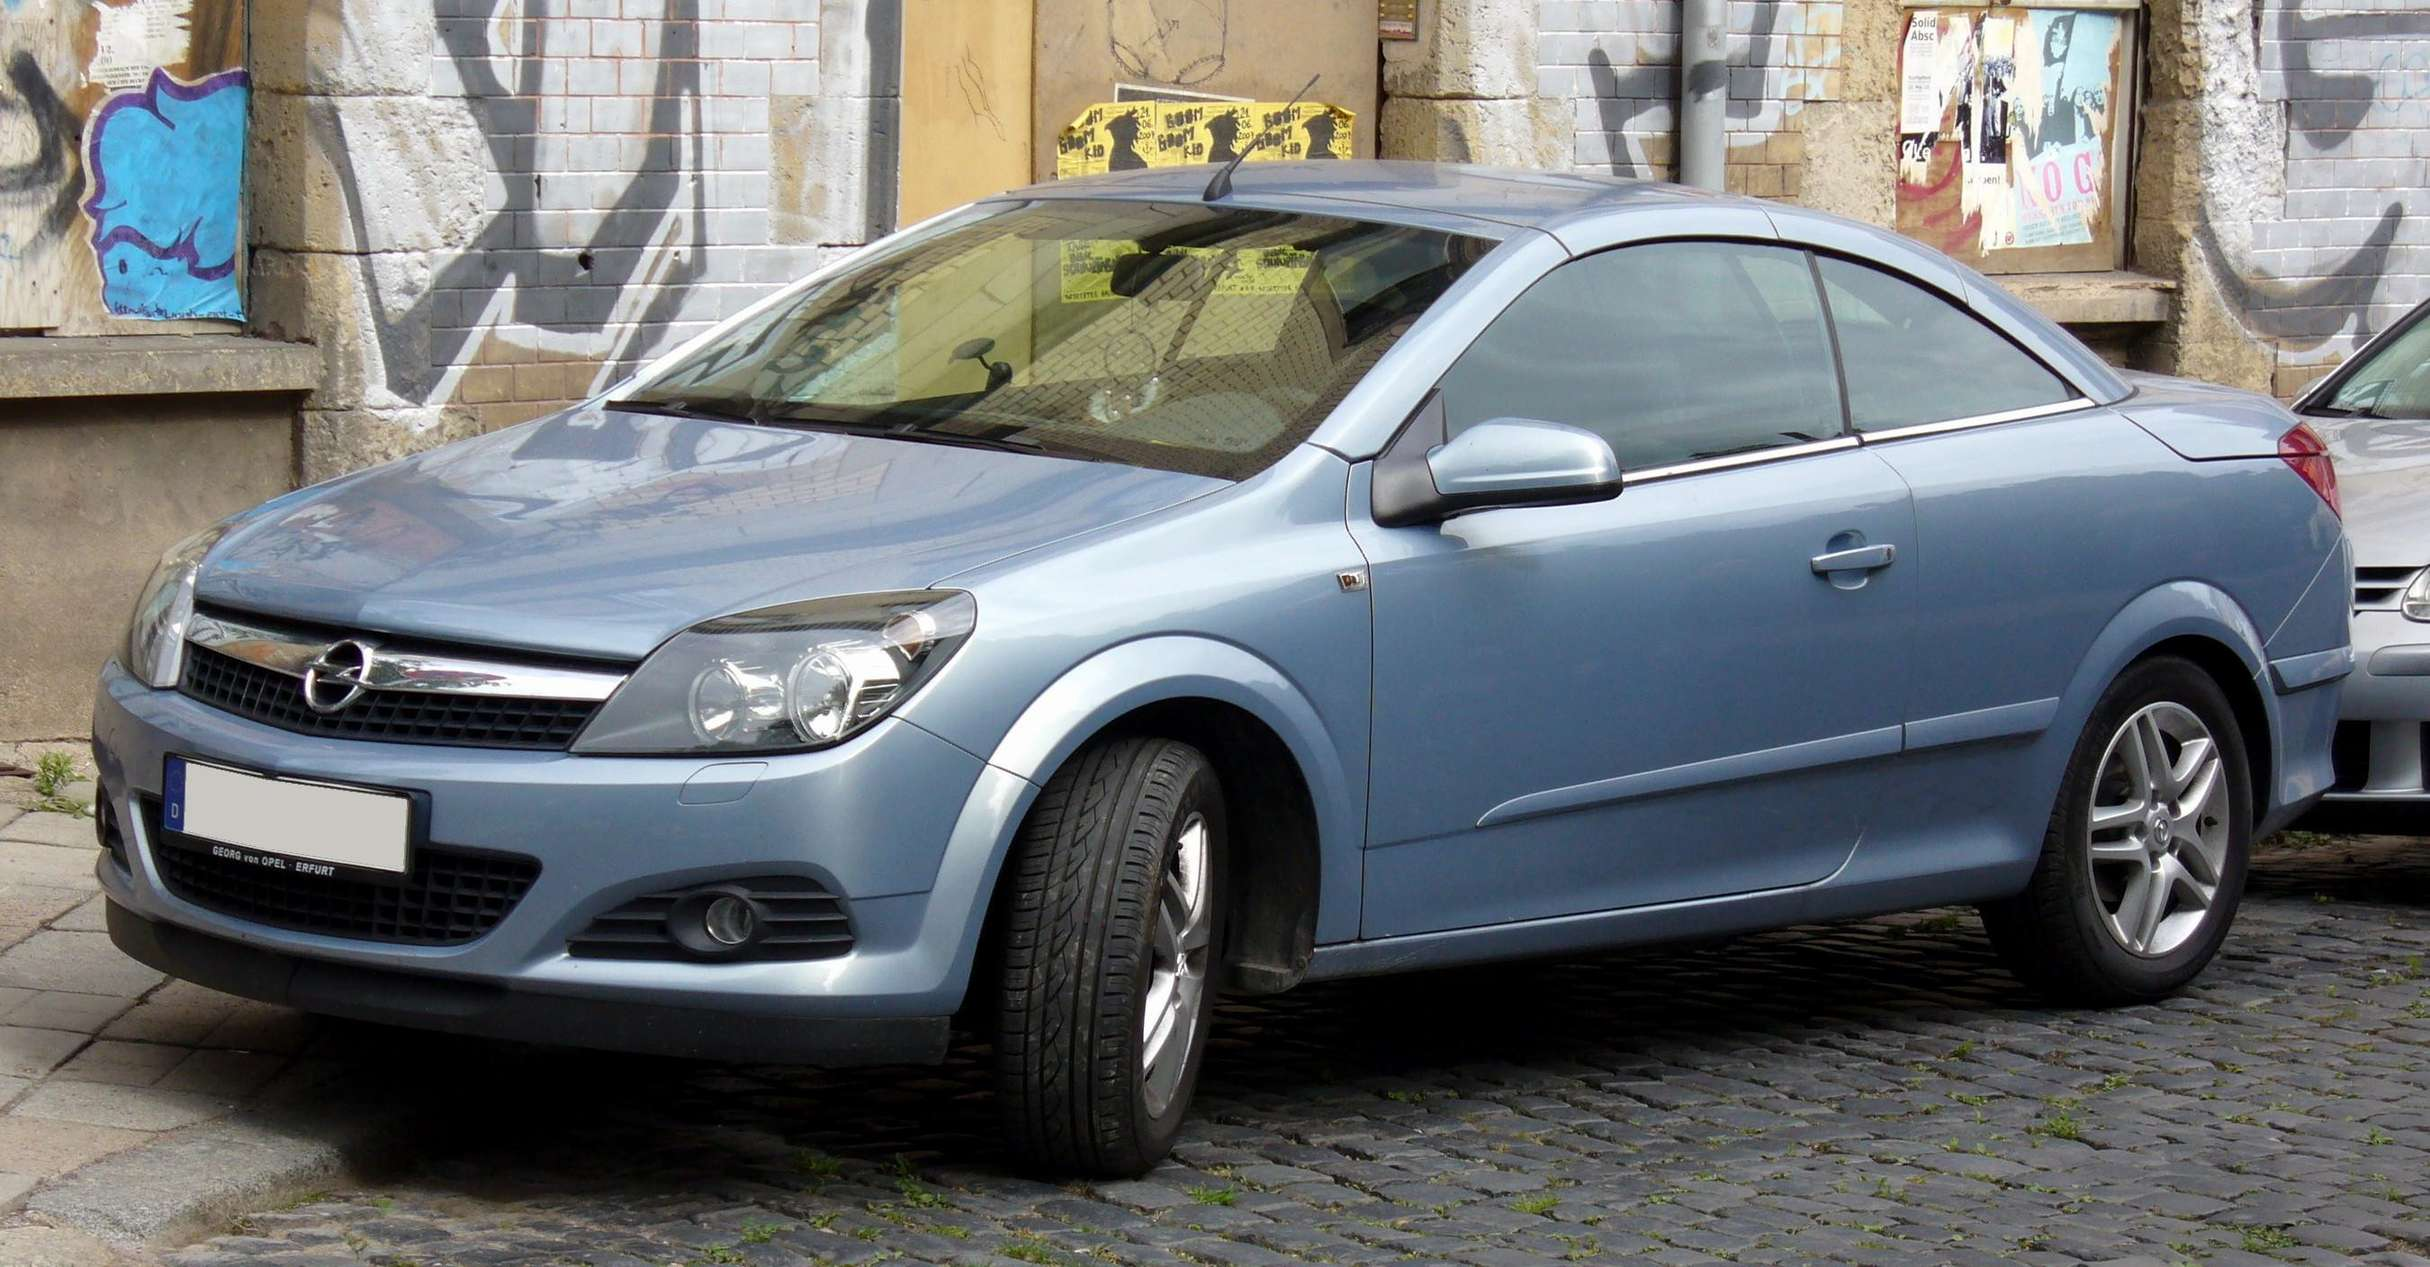 Opel Astra Twin Top #8489481